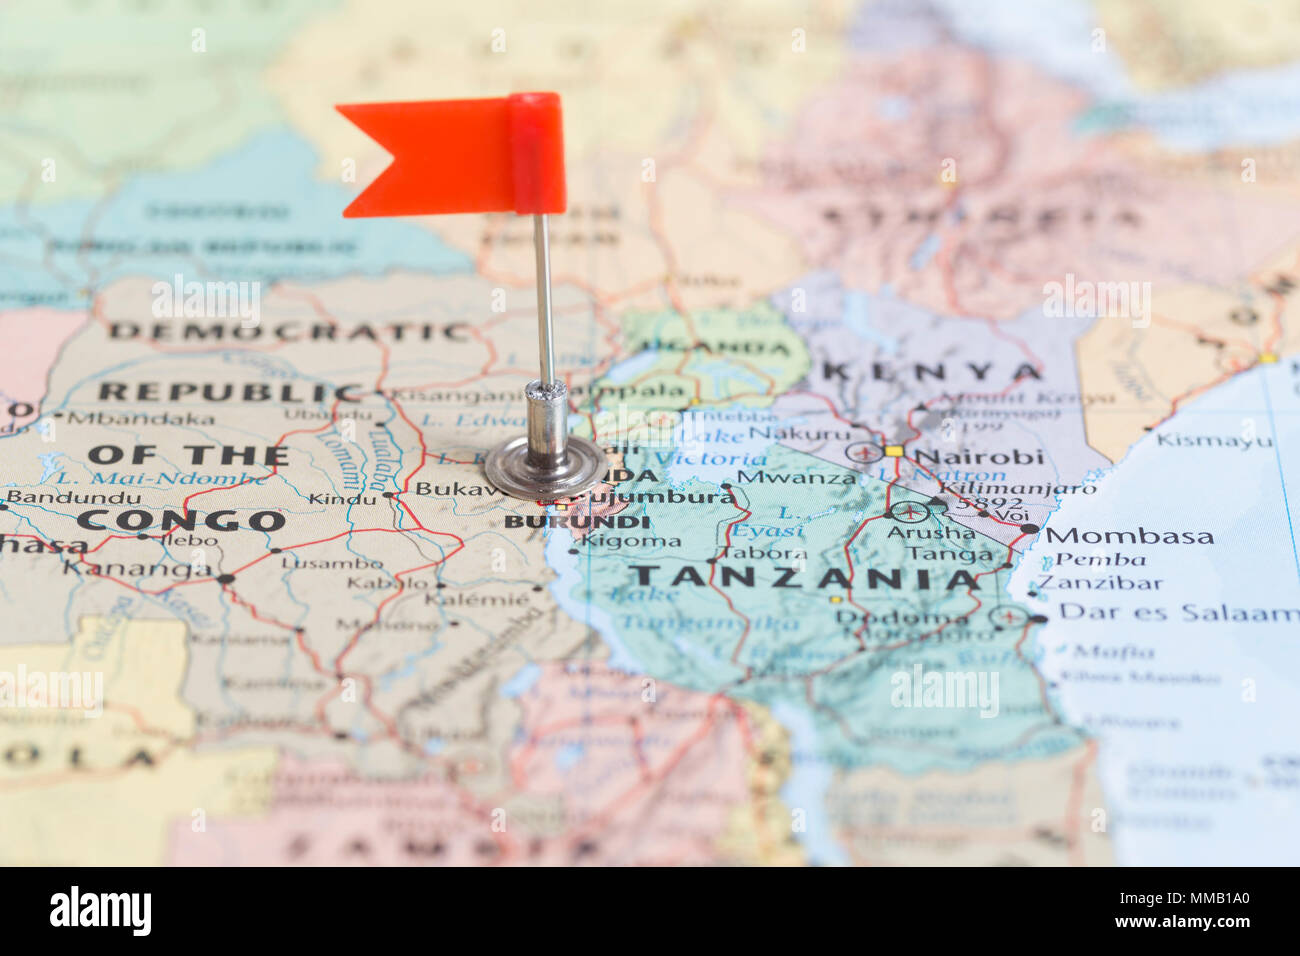 Small red flag marking the African country of Burundi on a world map. - Stock Image